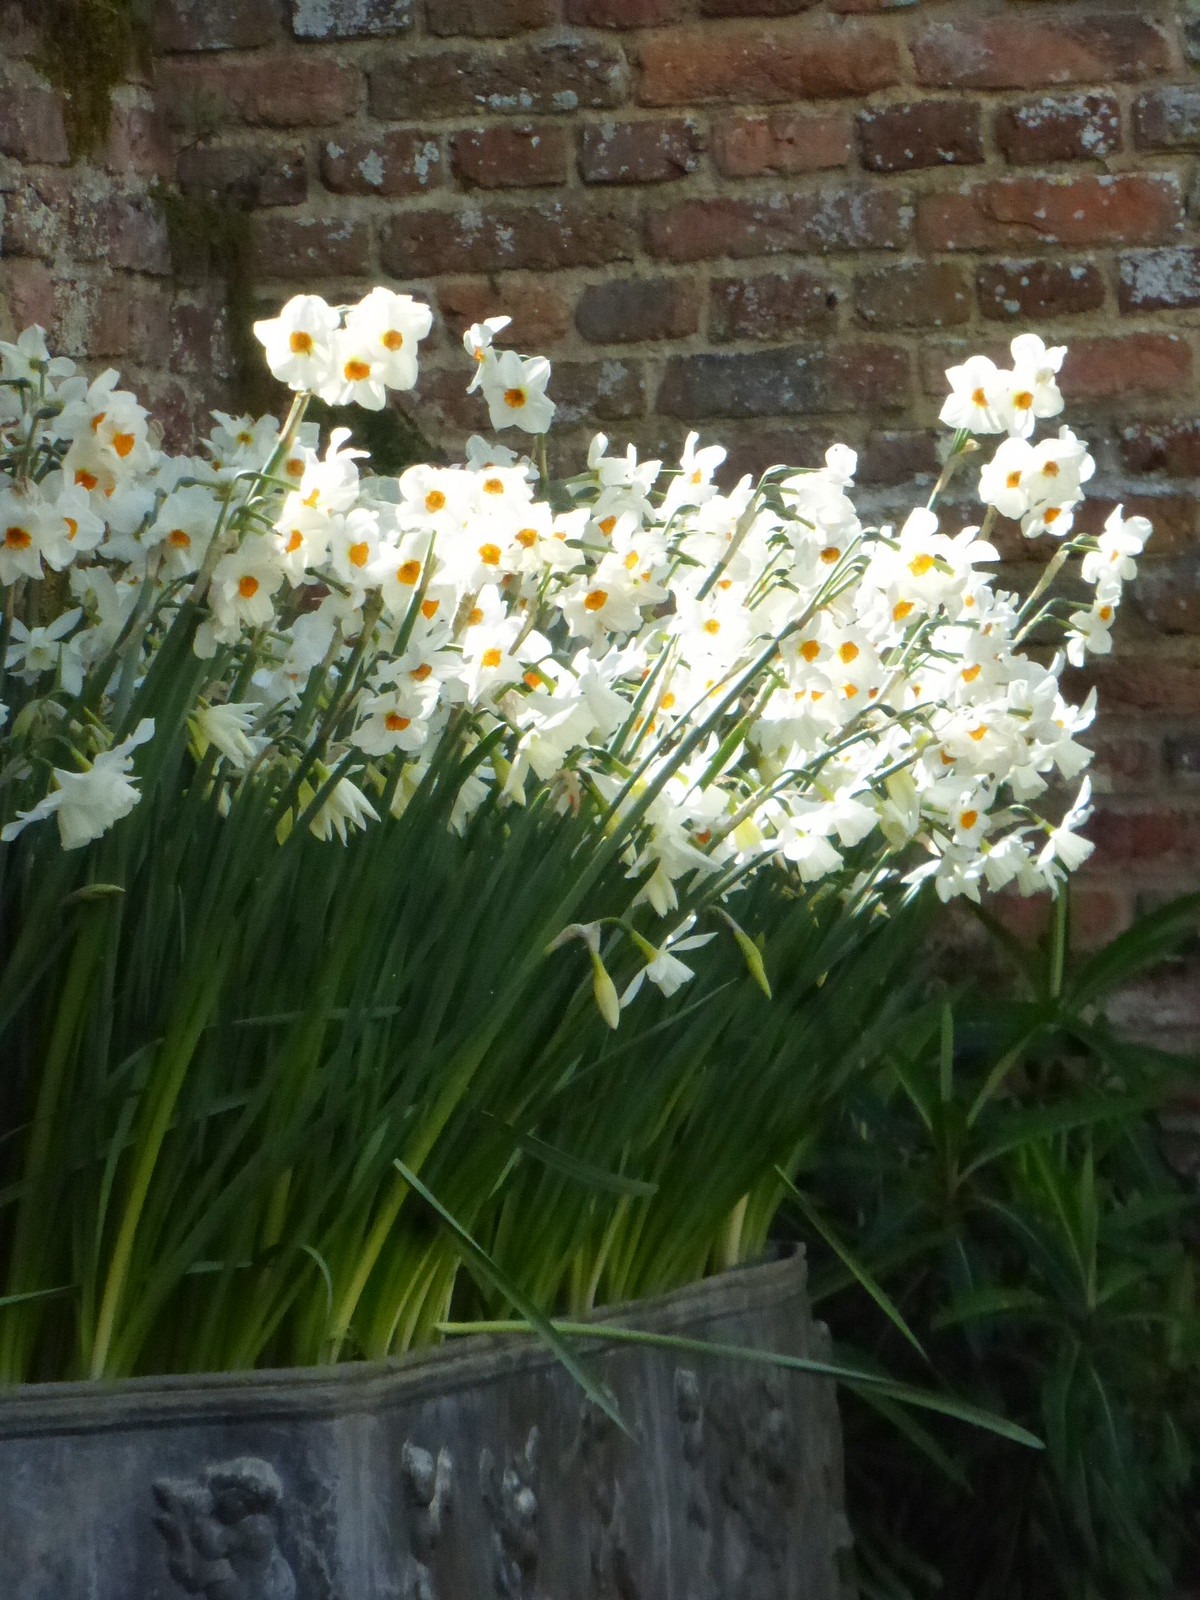 Sissinghurst, 30 April 2016